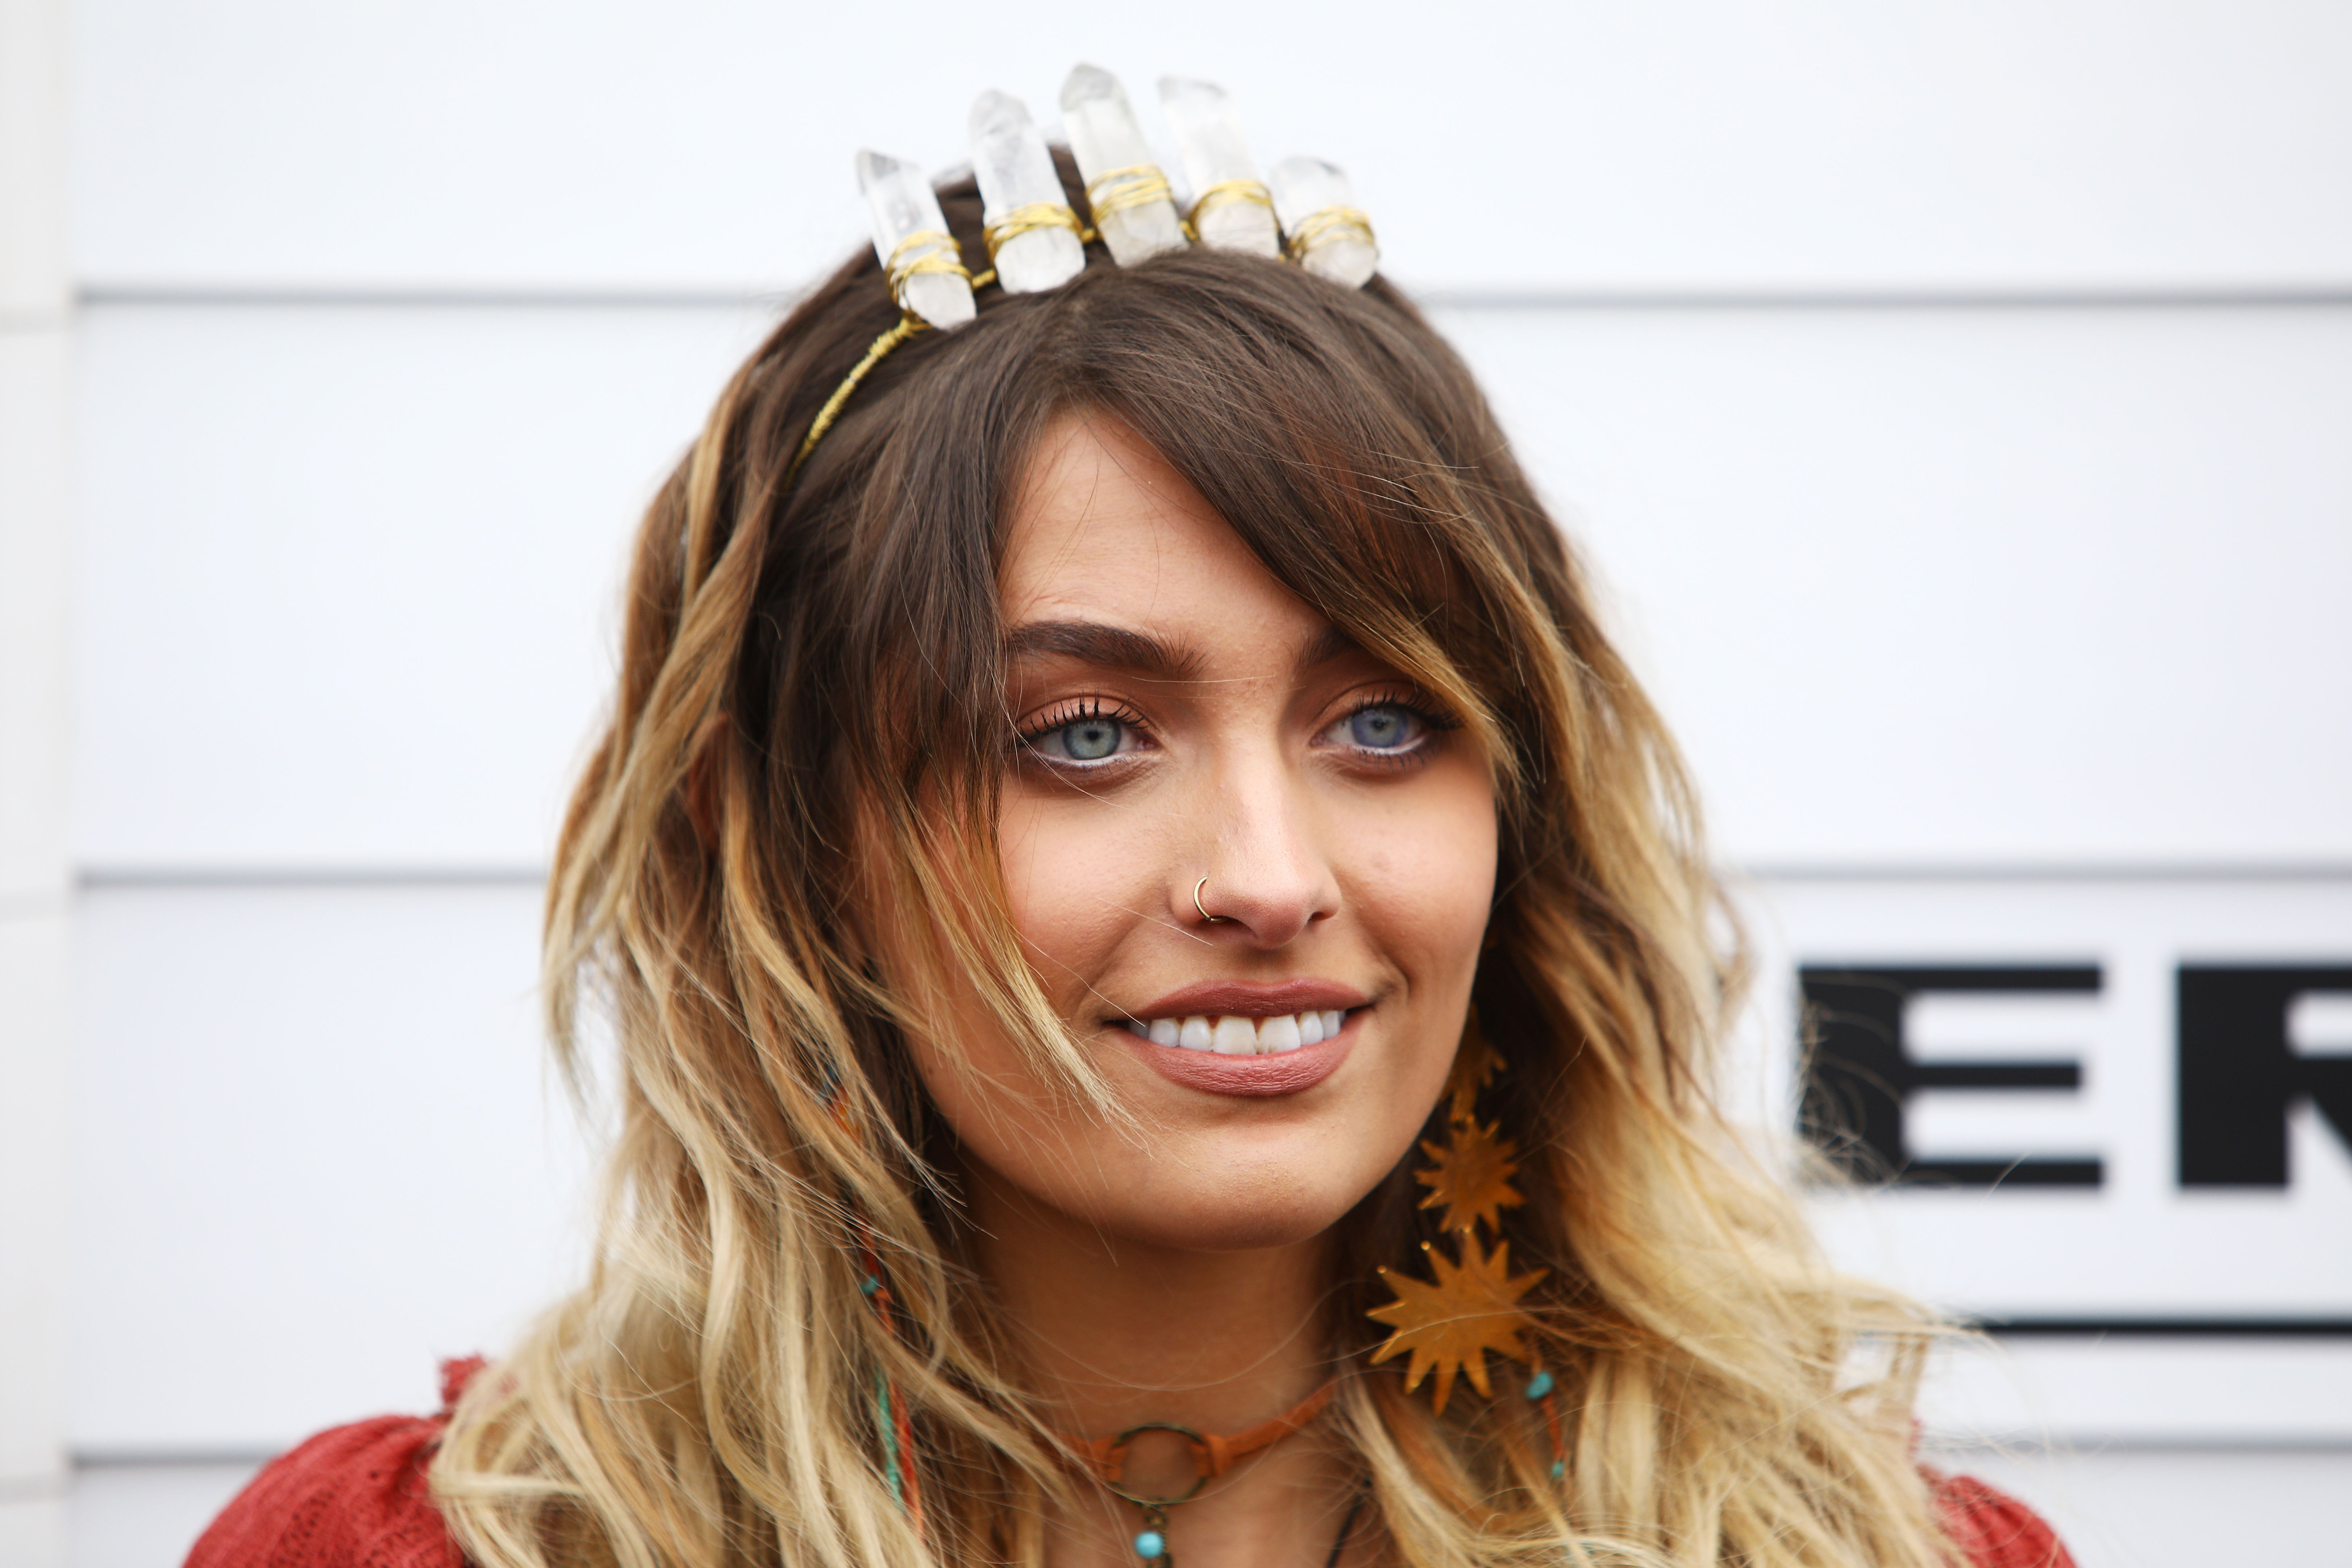 Paris Jackson poses at the Myer Marquee on Emirates Melbourne Cup Day at Flemington Racecourse on November 7, 2017, in Melbourne, Australia.   Source: Getty Images.